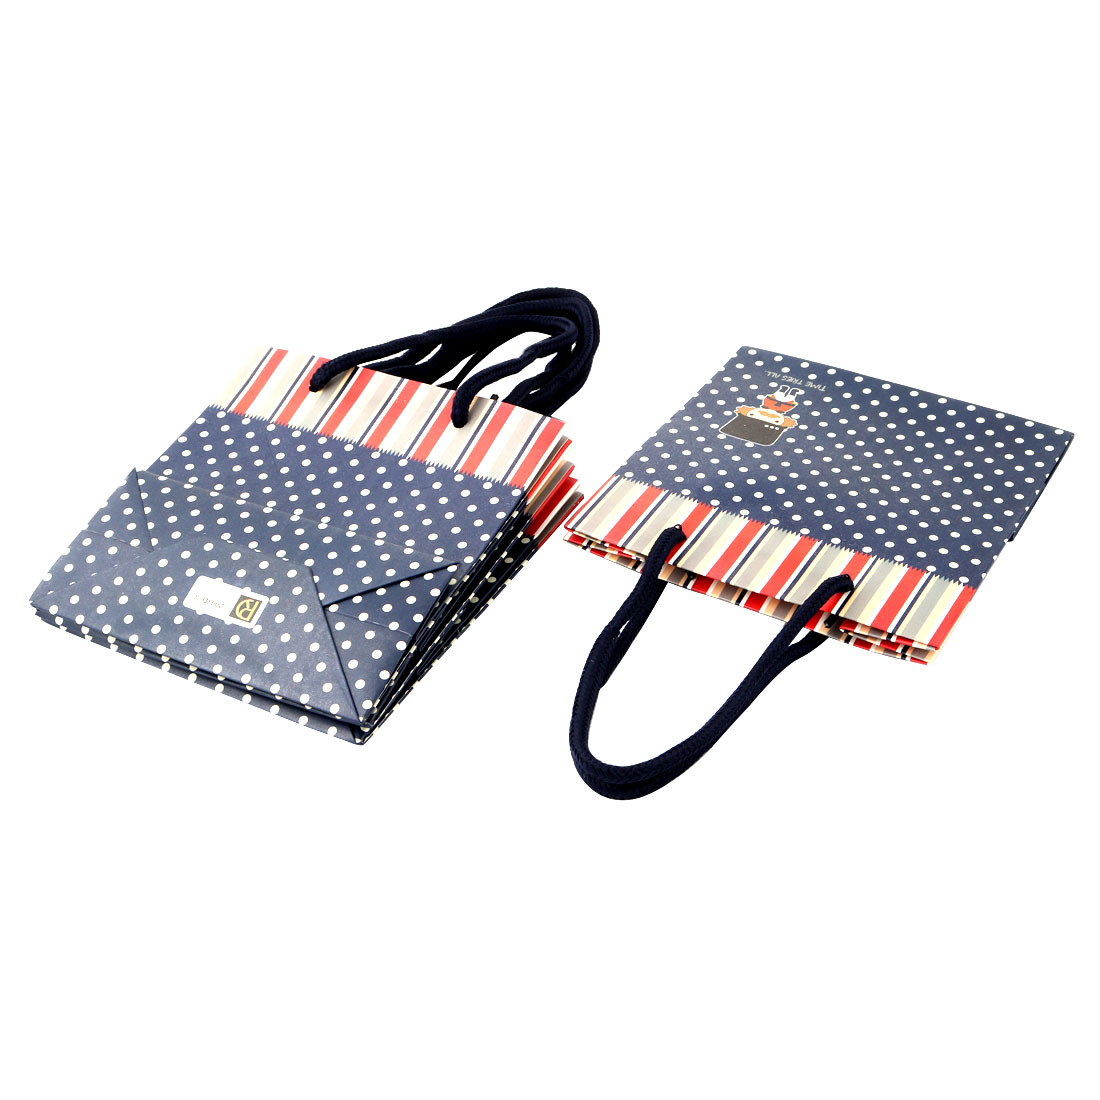 Unique Bargains Paper Dot Stripe Soldier Pattern Birthday Gift Packaging Bags Navy Blue 4pcs